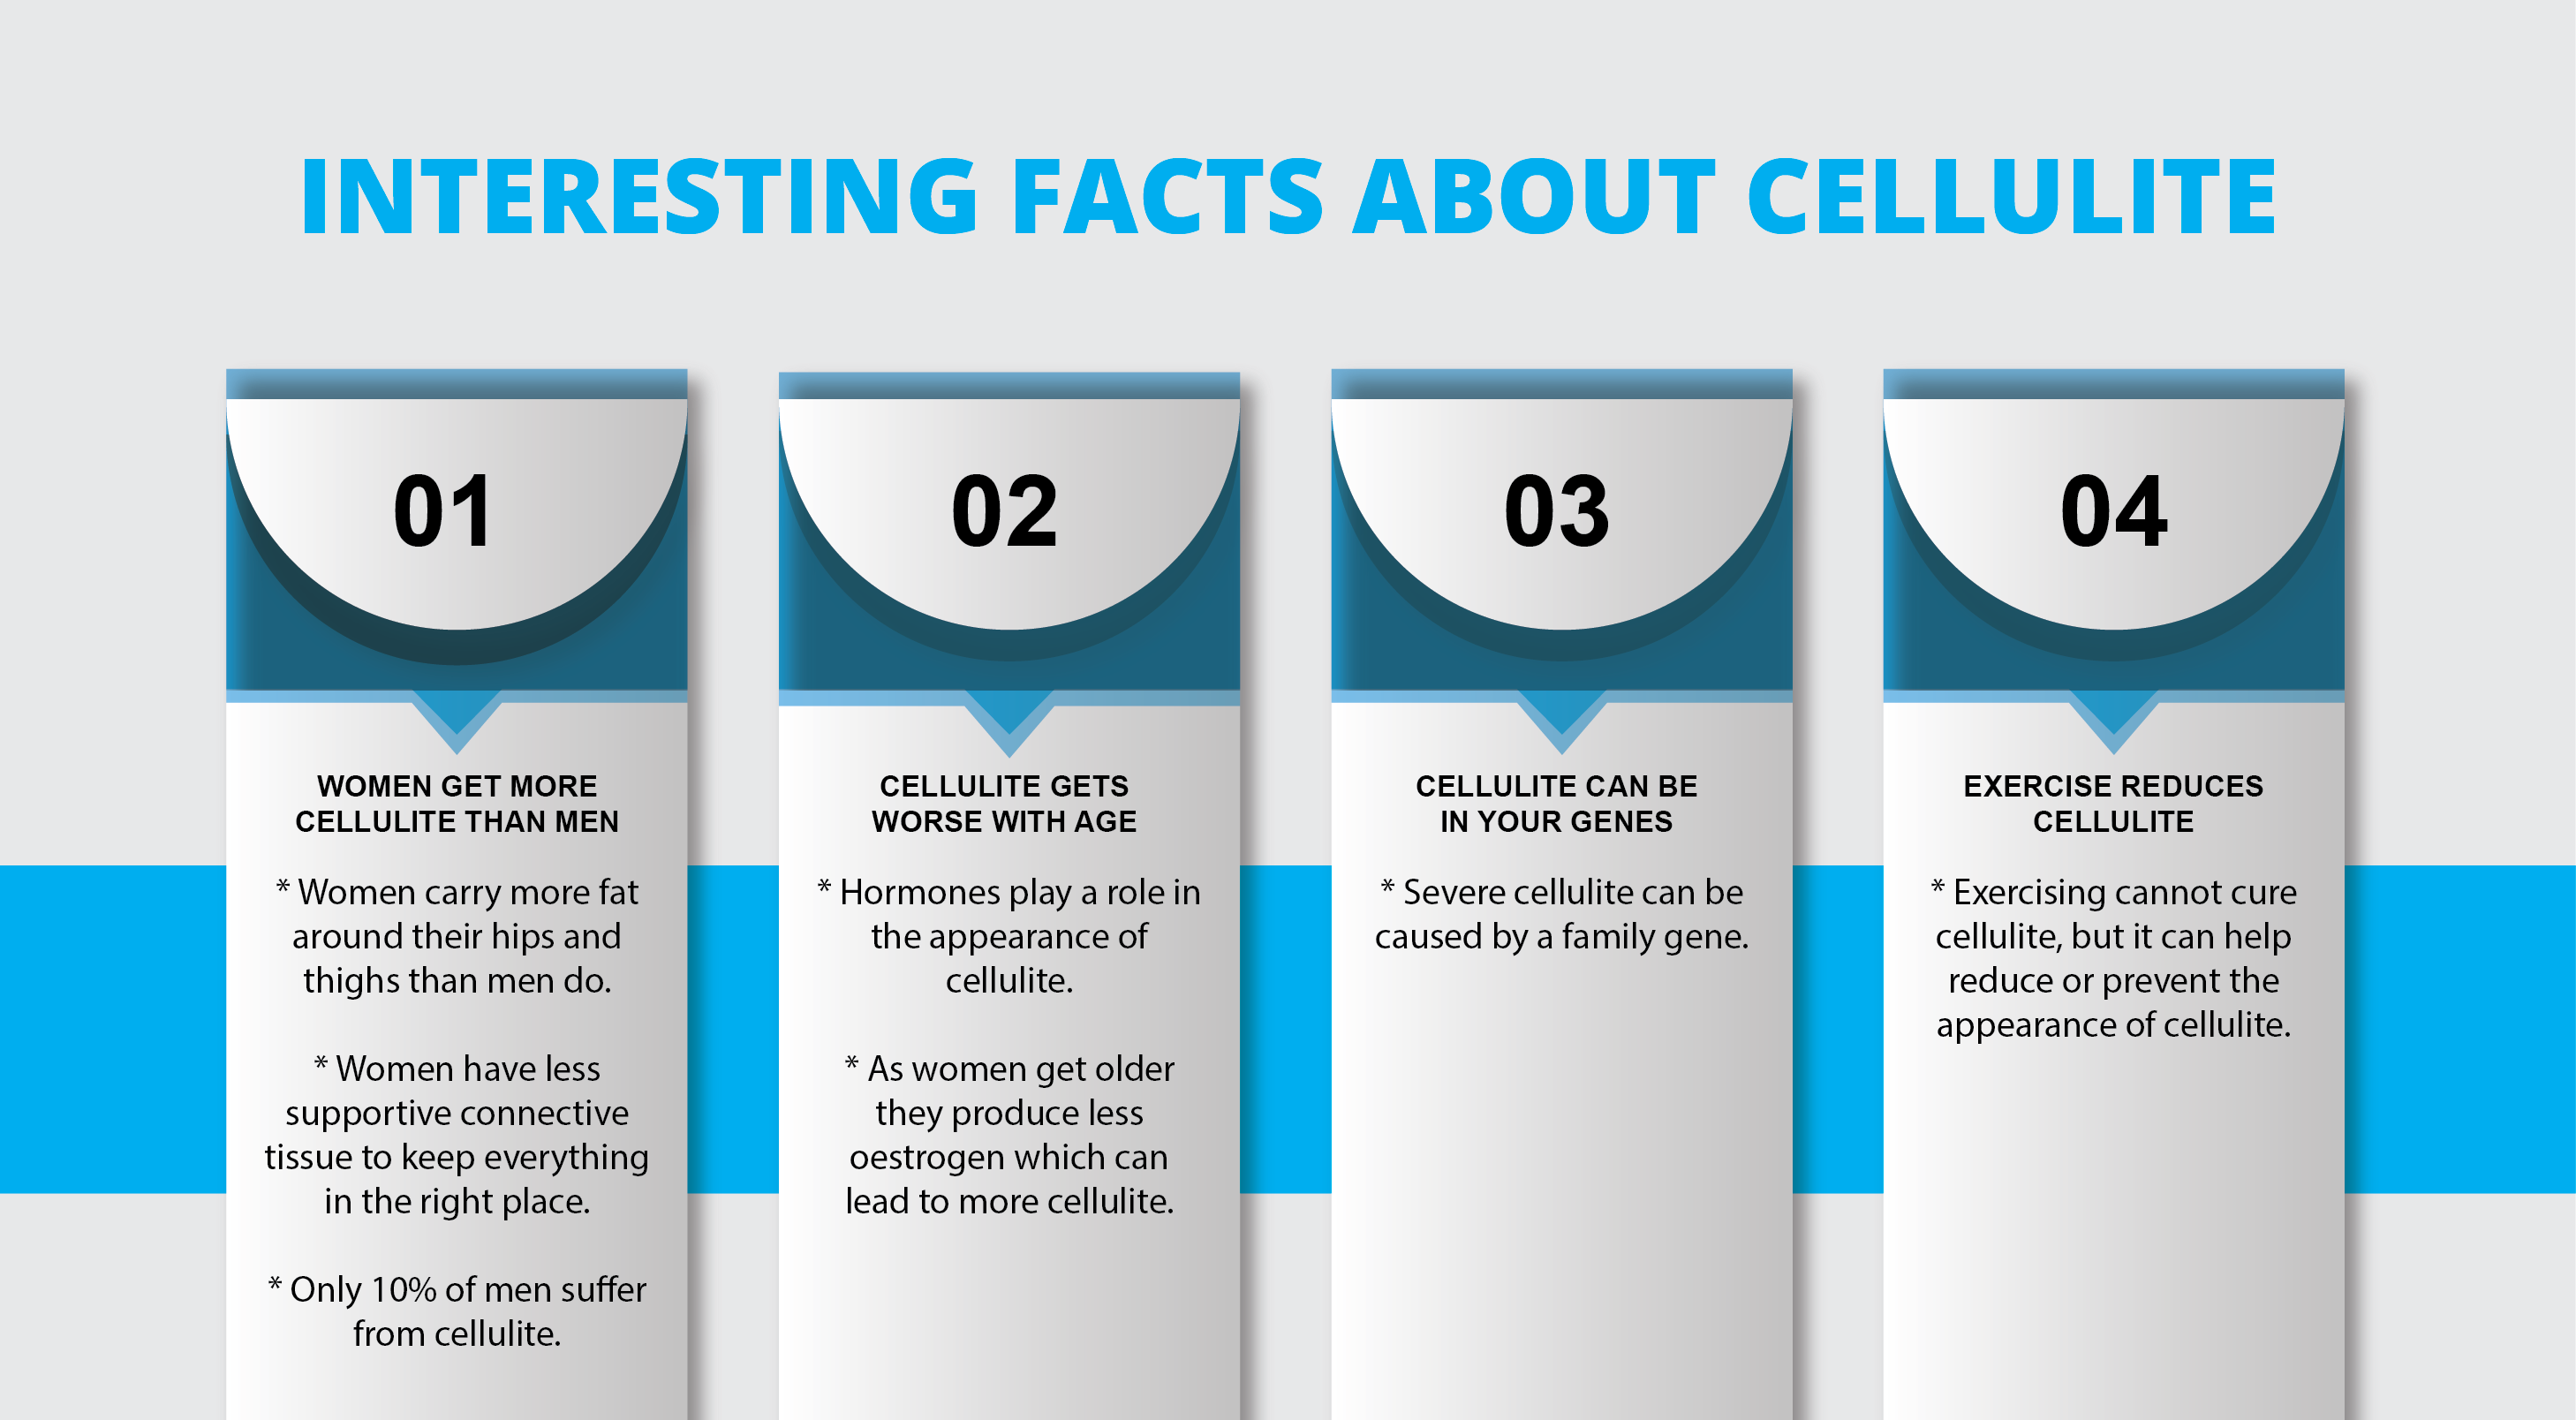 Interesting Facts about Cellulite